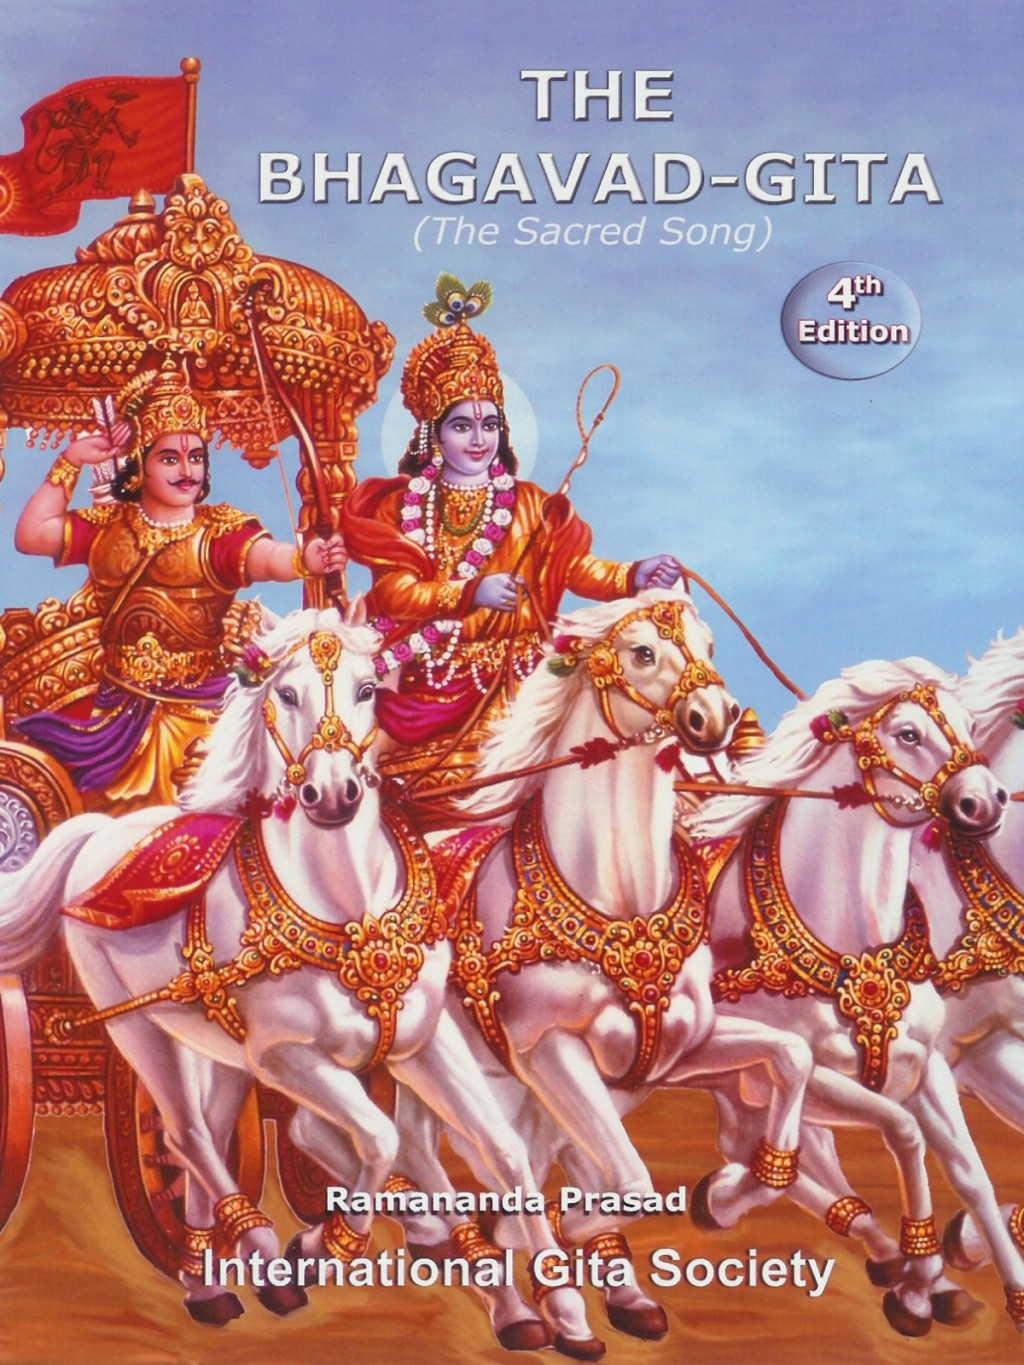 00 Bhagavad-Gita cover International Gita Society